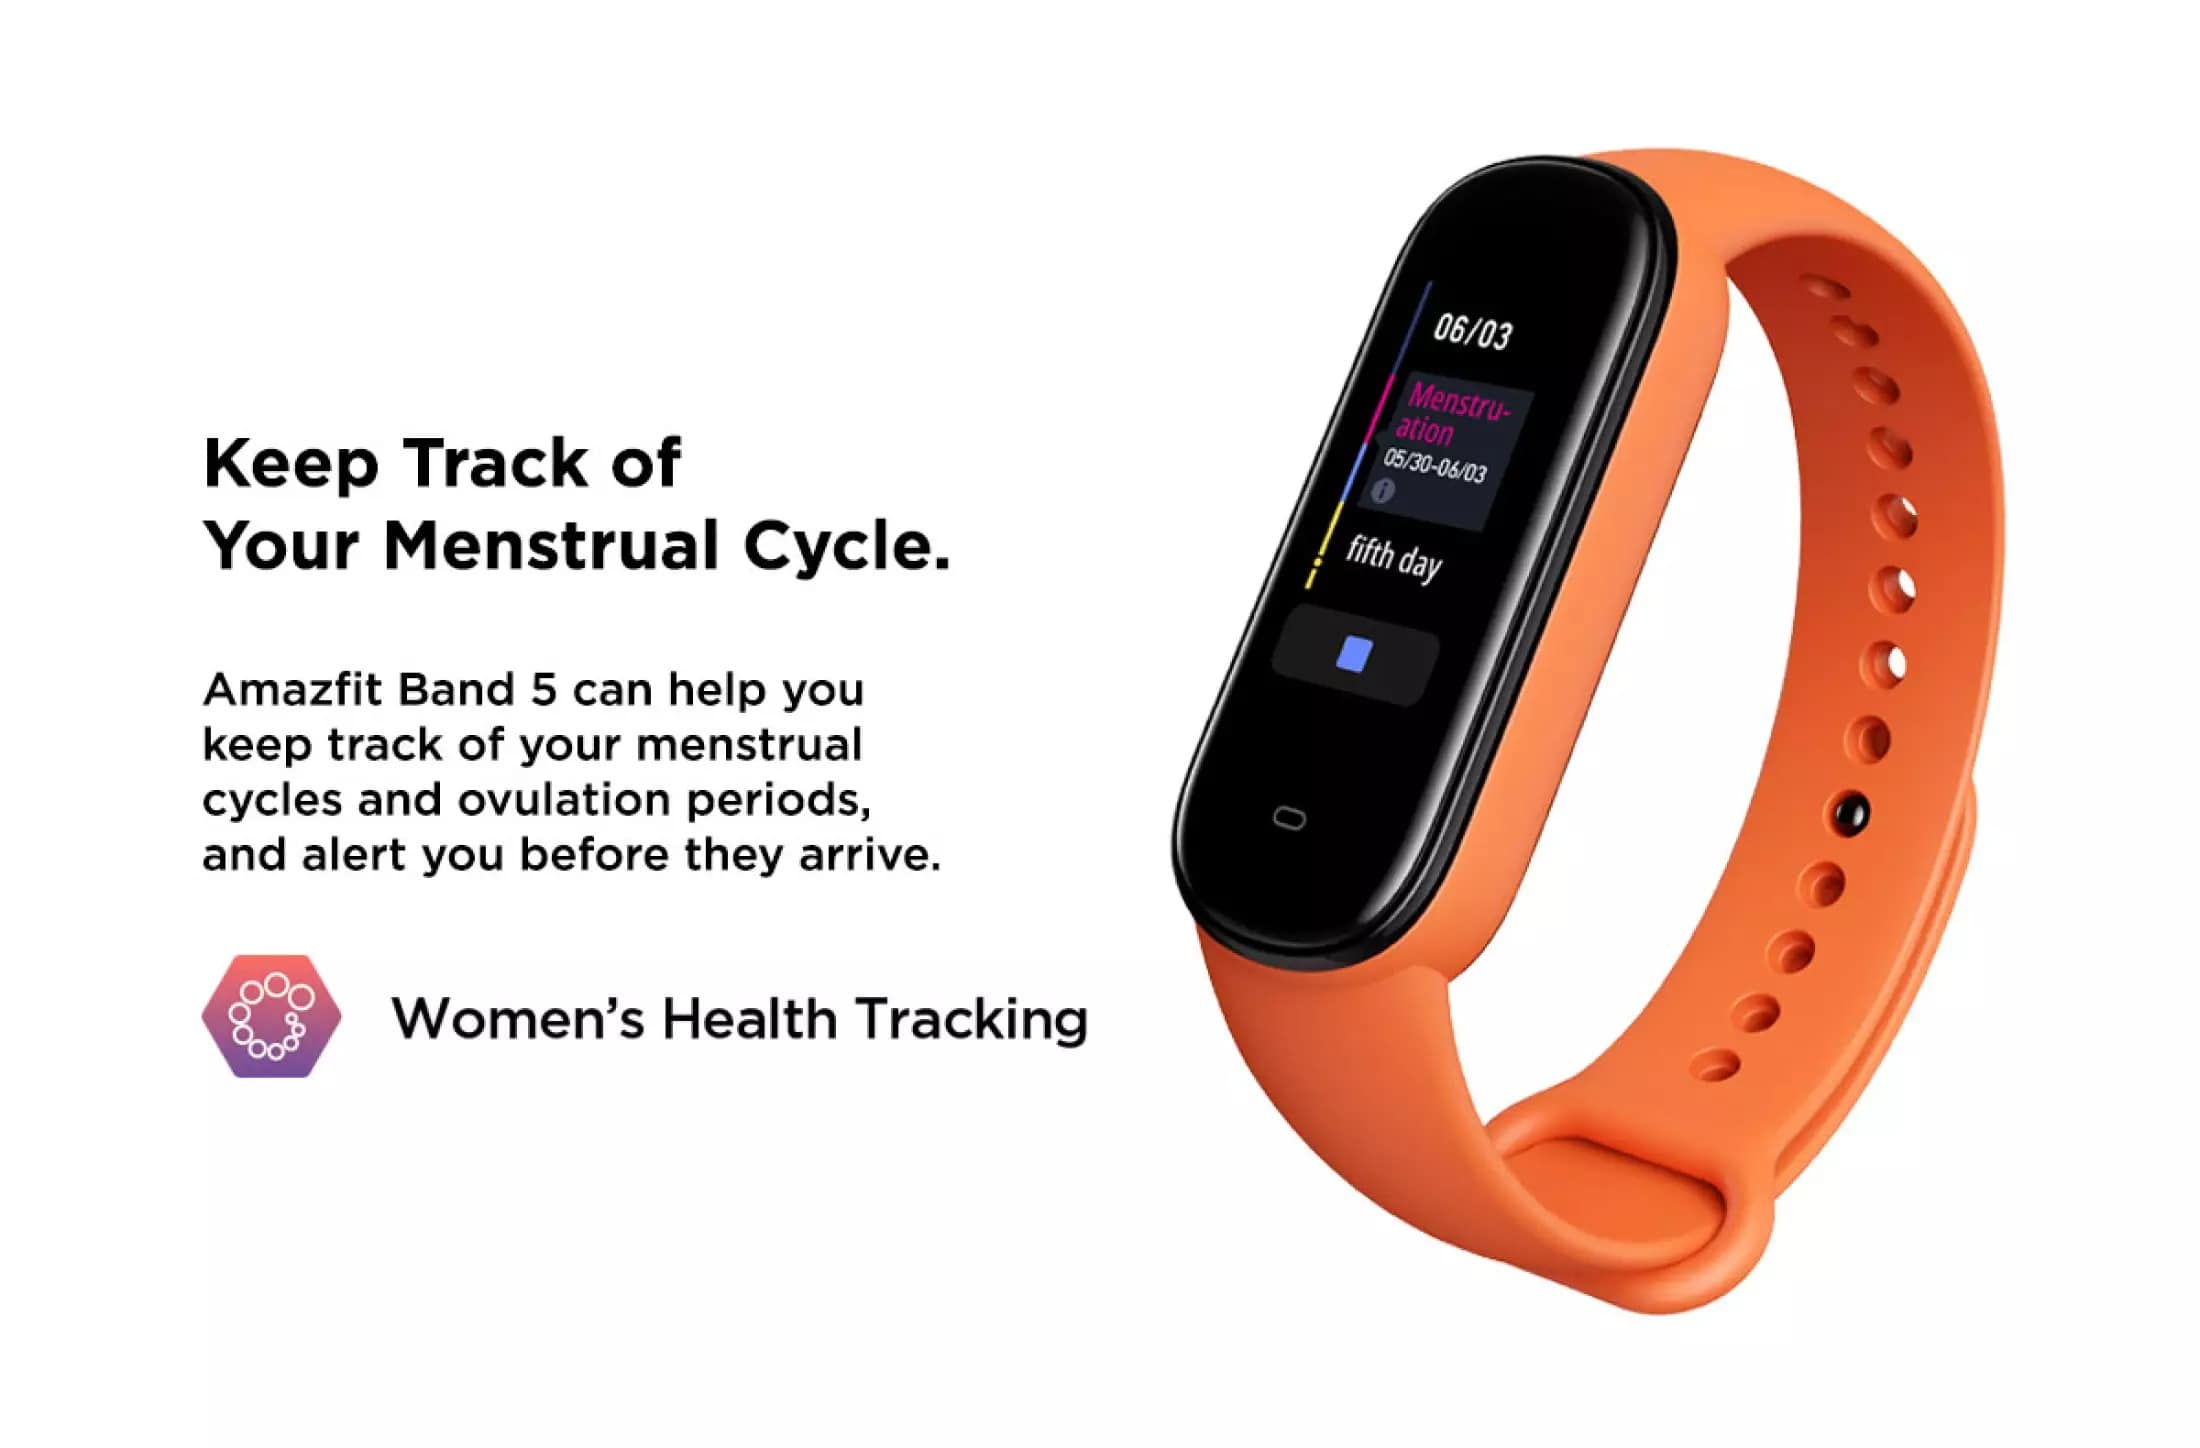 Amazfit Band 5 Keep Tracks of Your Menstrual Cycle